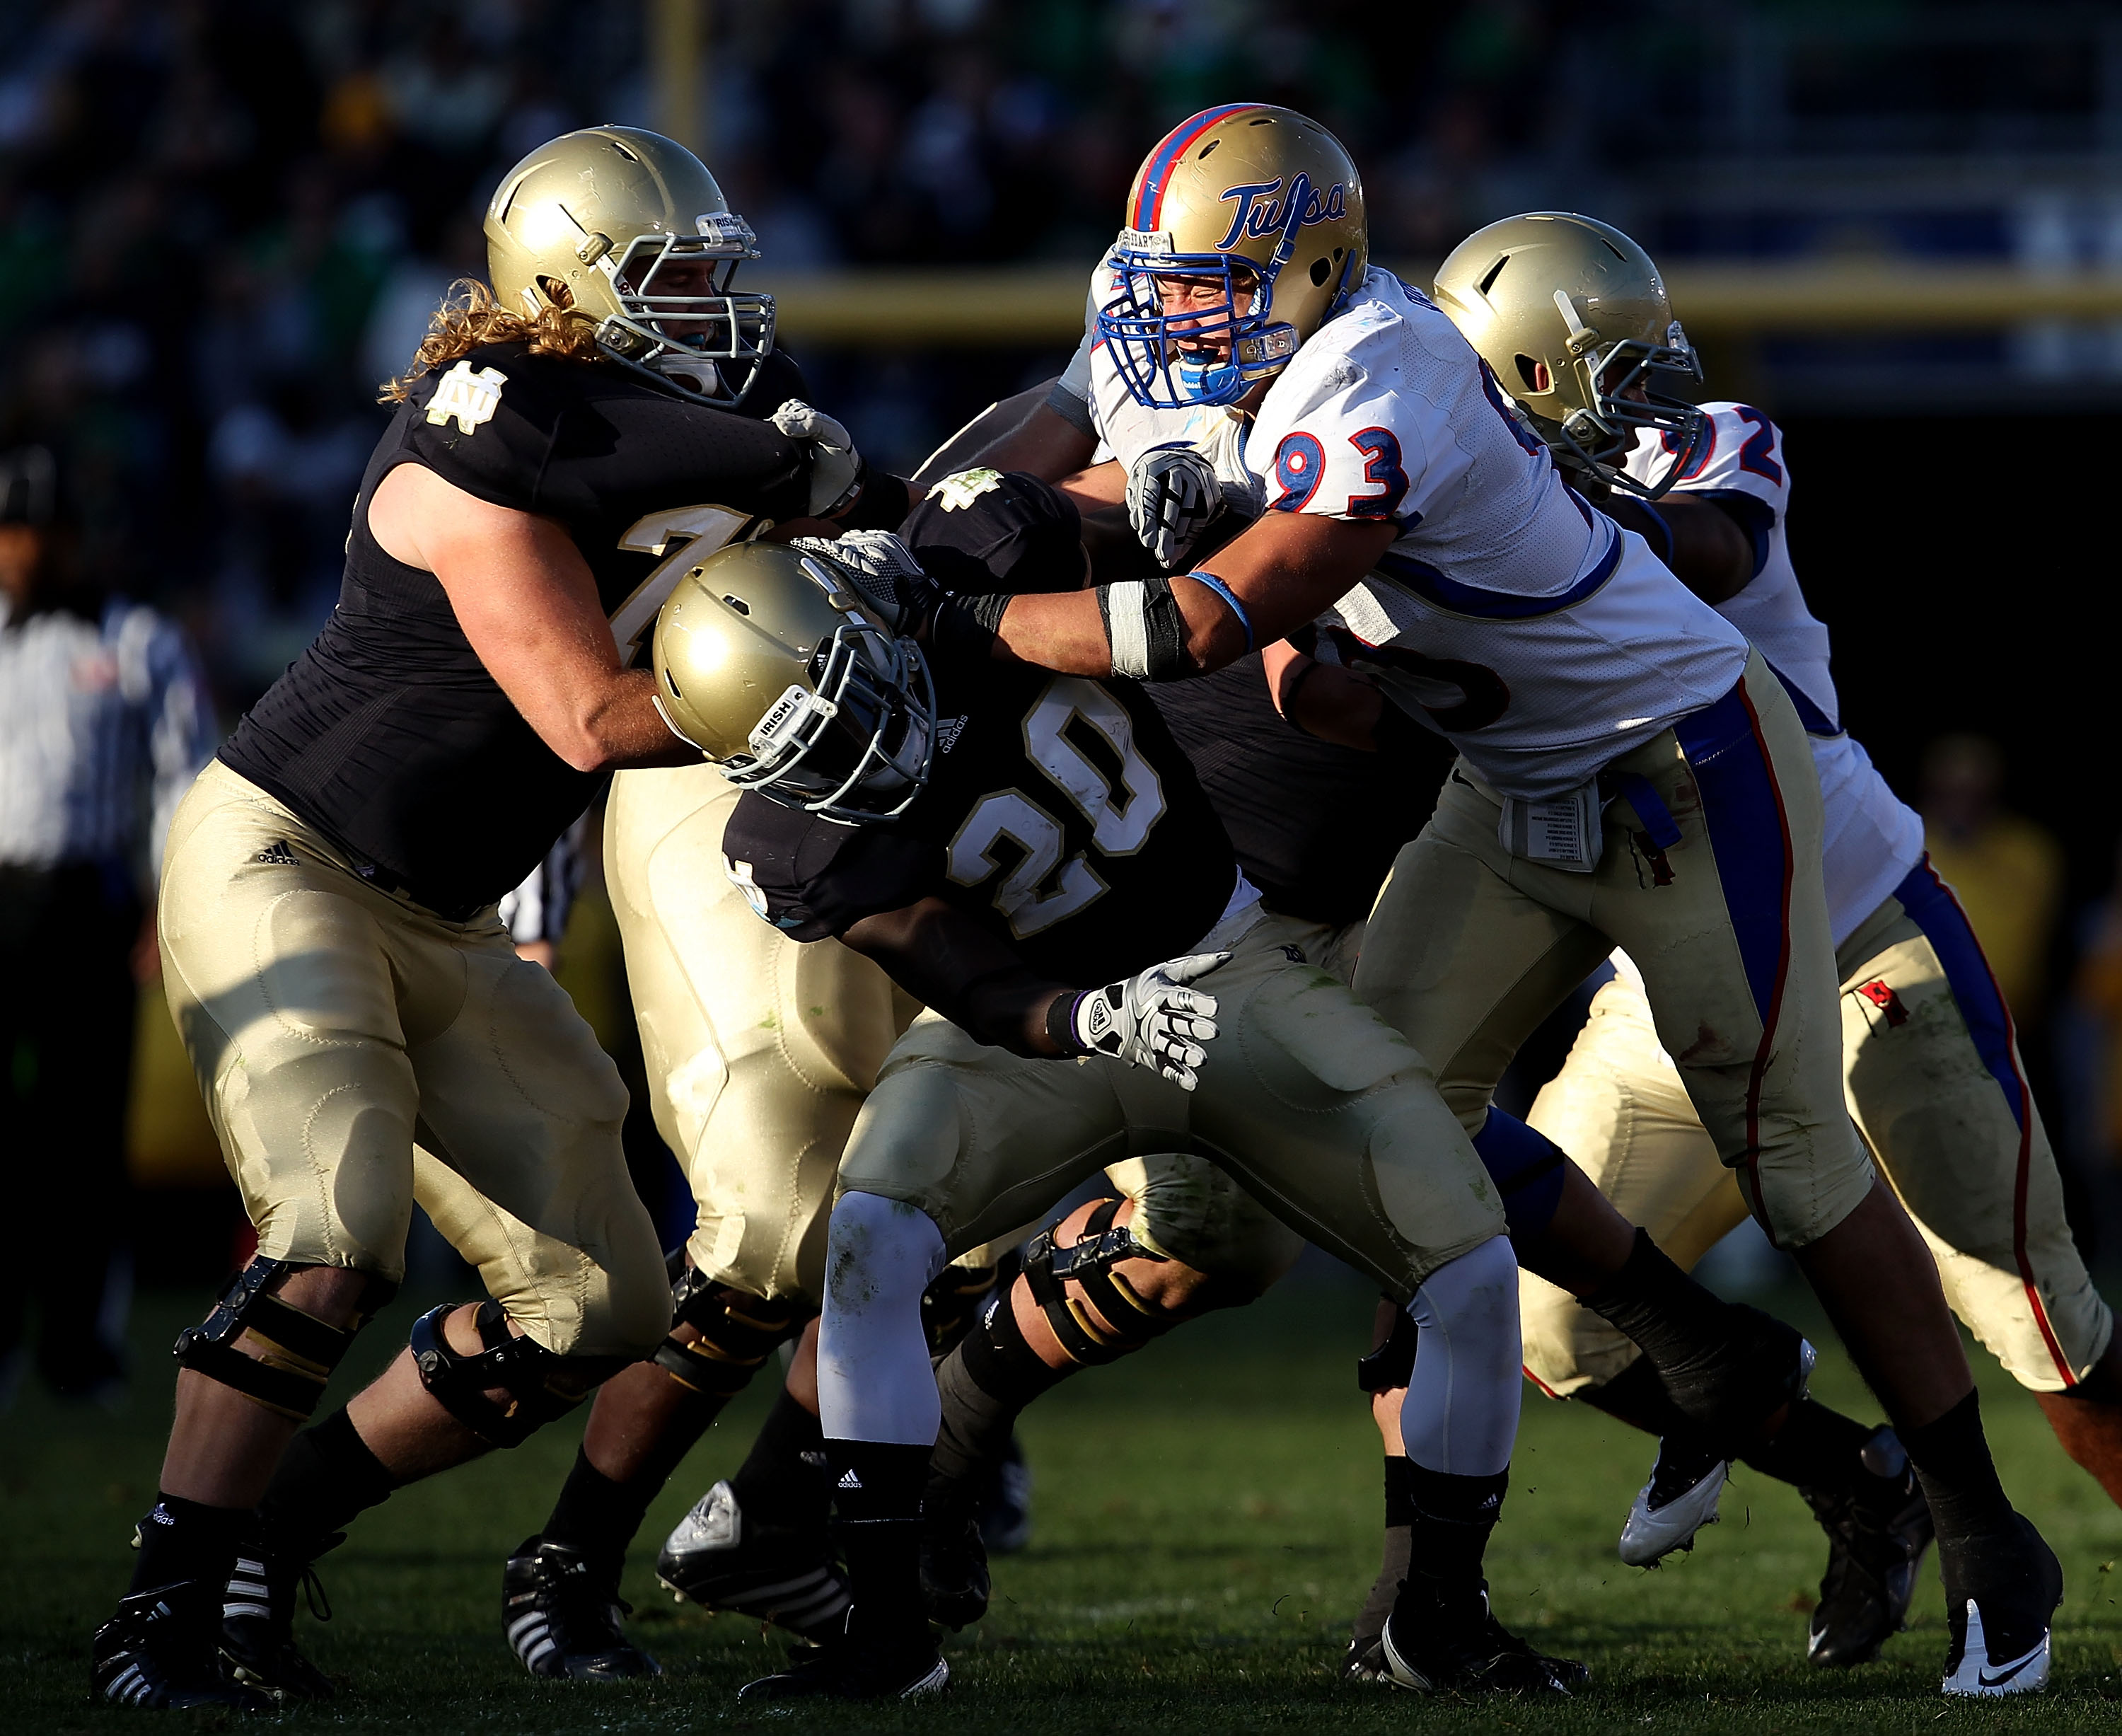 SOUTH BEND, IN - OCTOBER 30: Cory Dorris #93 of the Tulsa Golden Hurricane takes on Taylor Dever #75 and Cierre Wood #20 of the Notre Dame Fighting Irish at Notre Dame Stadium on October 30, 2010 in South Bend, Indiana. Tulsa defeated Notre Dame 28-27. (P